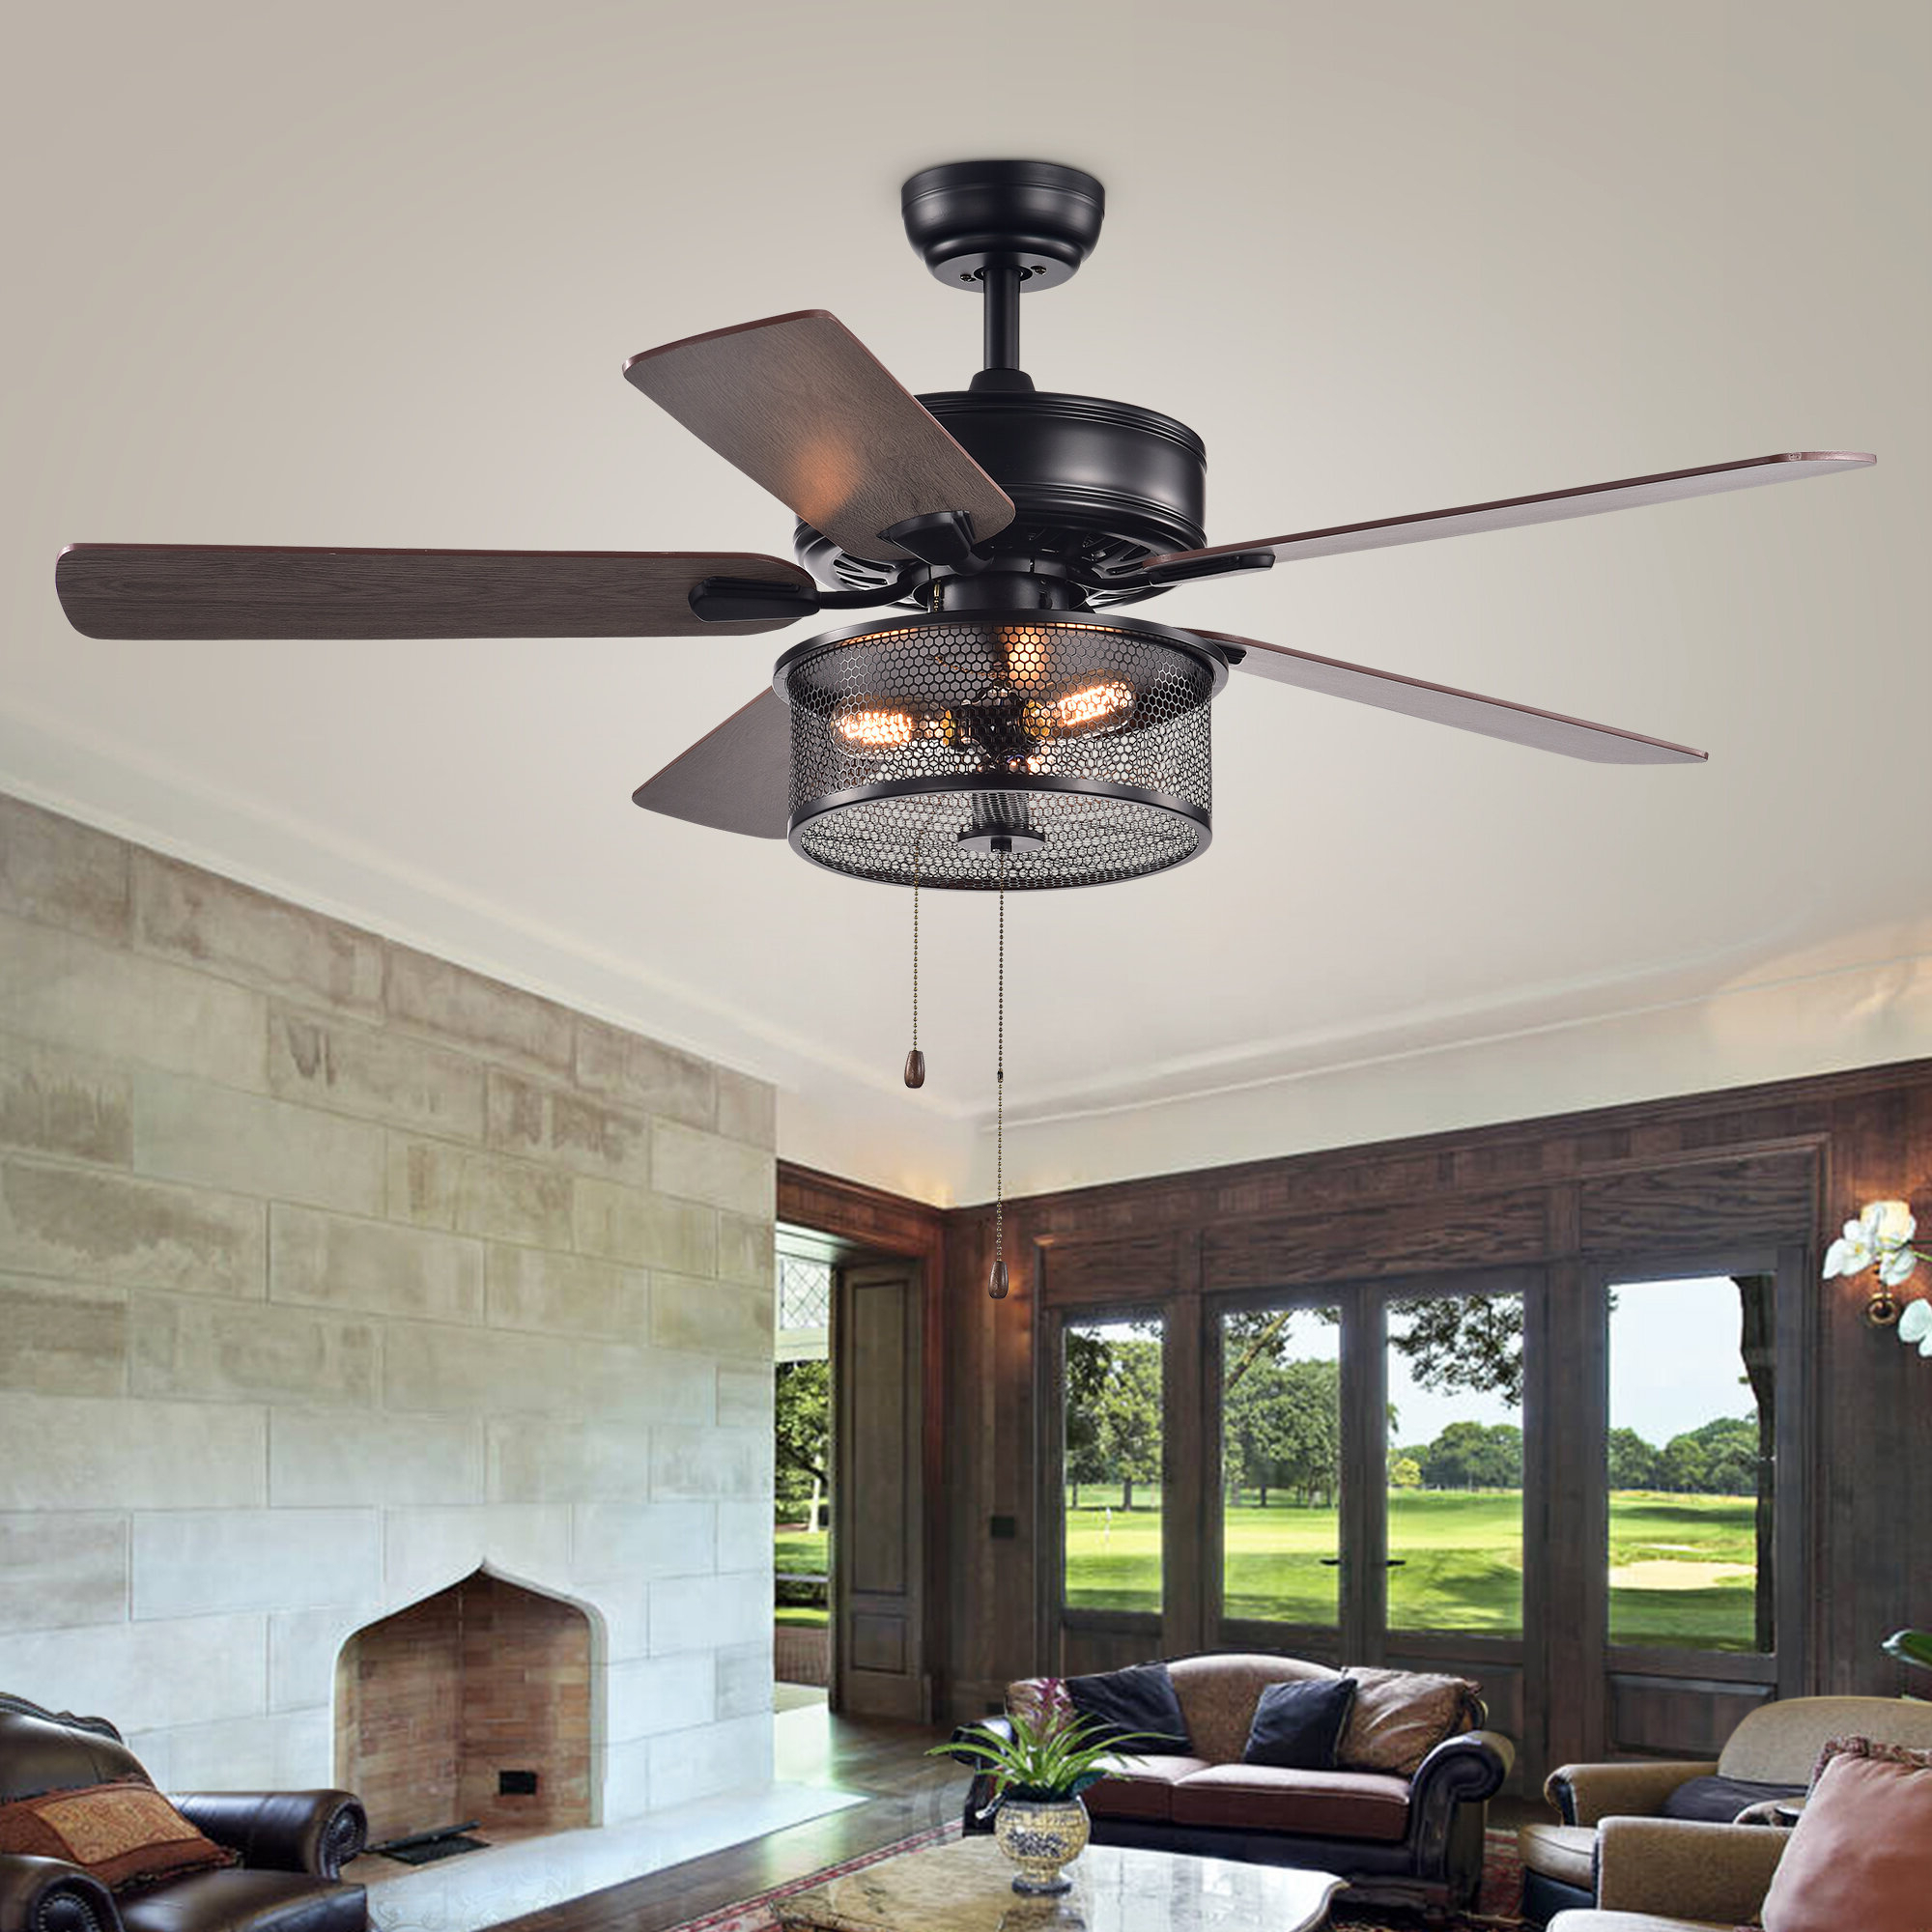 Elyssa 5 Blade Ceiling Fan, Light Kit Included & Reviews Intended For Most Popular Roberts 5 Blade Ceiling Fans (View 10 of 20)